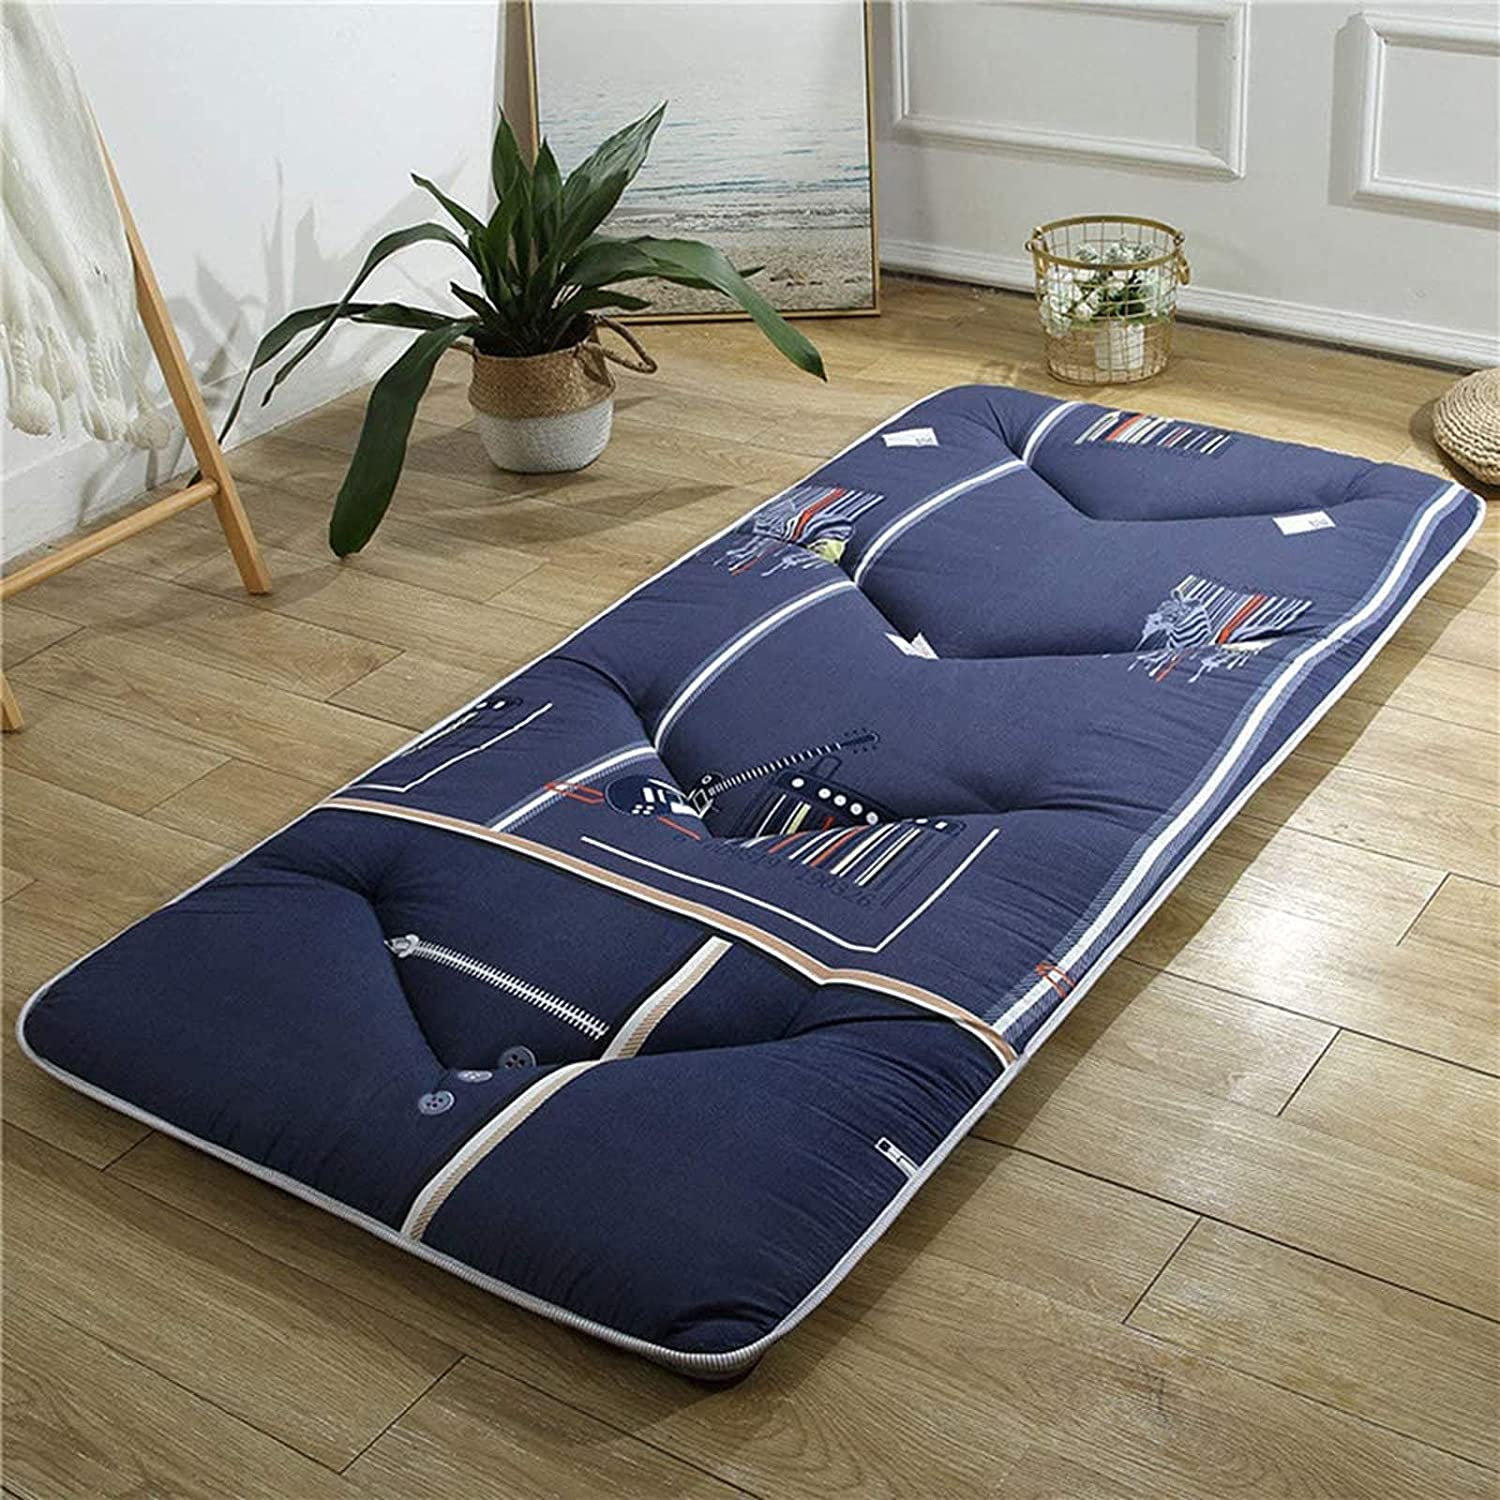 LIMIAO New Free Shipping Tatami Floor Mat Japanese Be Massage Bed Rolling Thai Save money